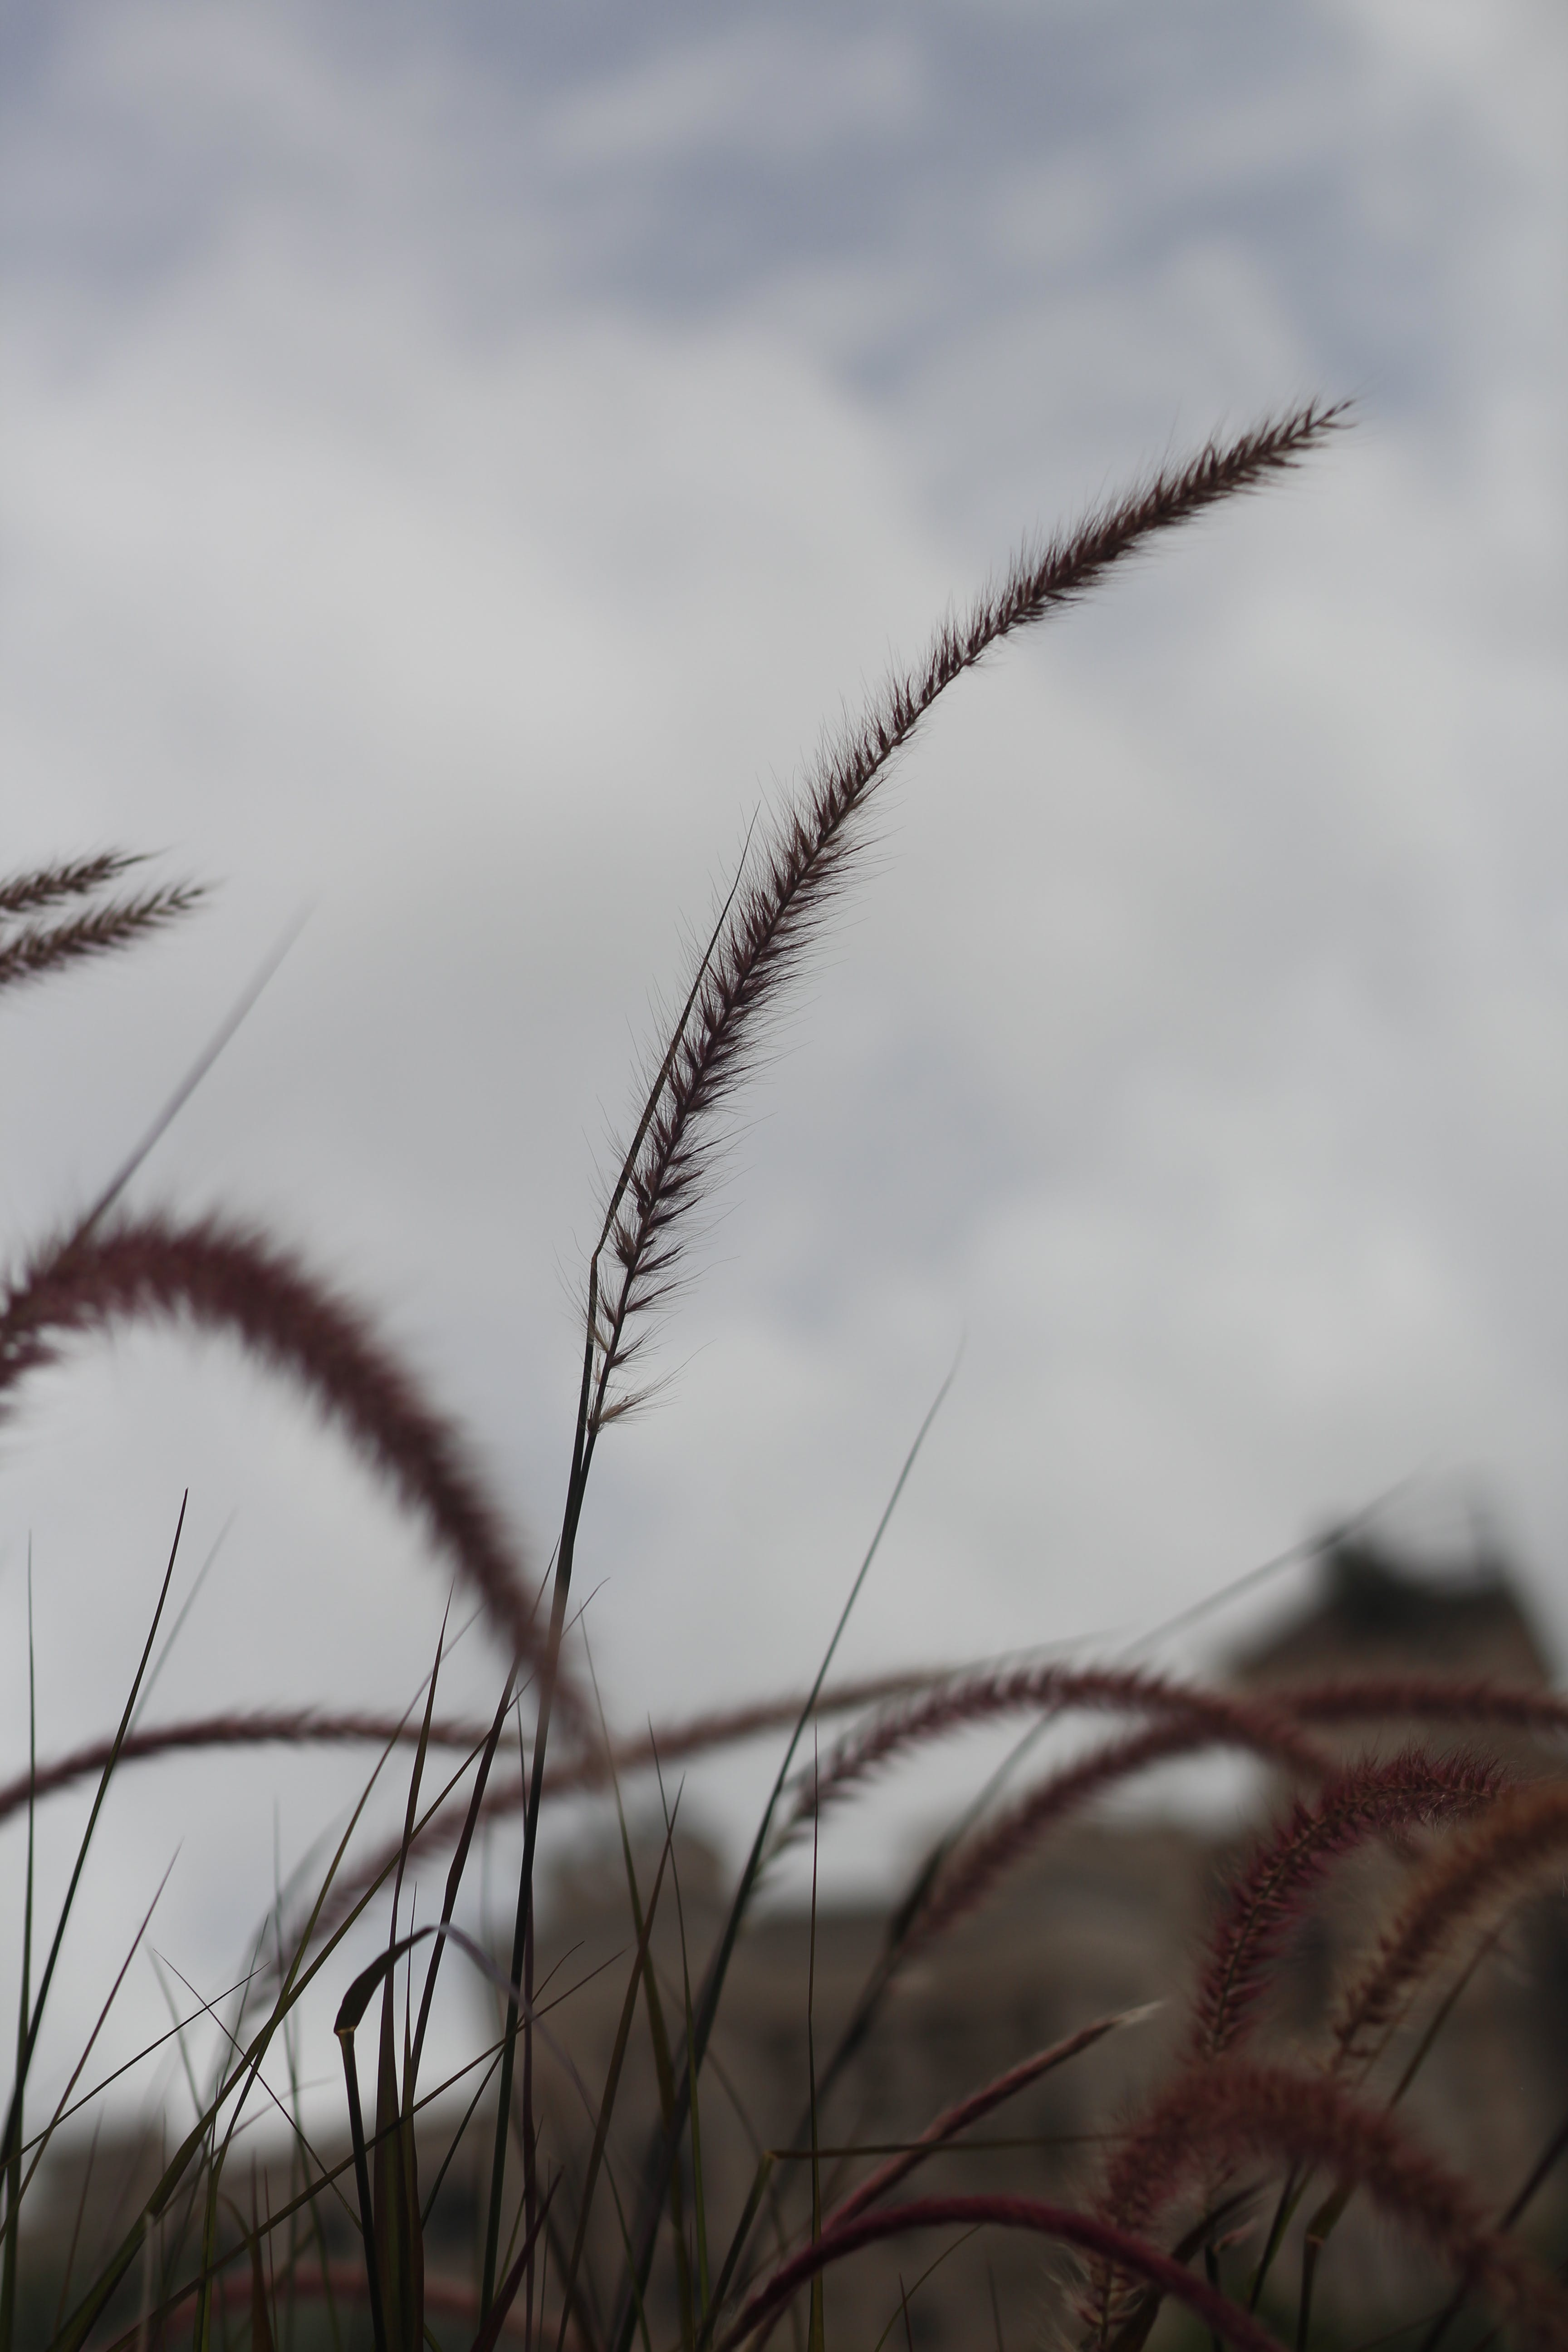 Selective Focus Photo of Wheat